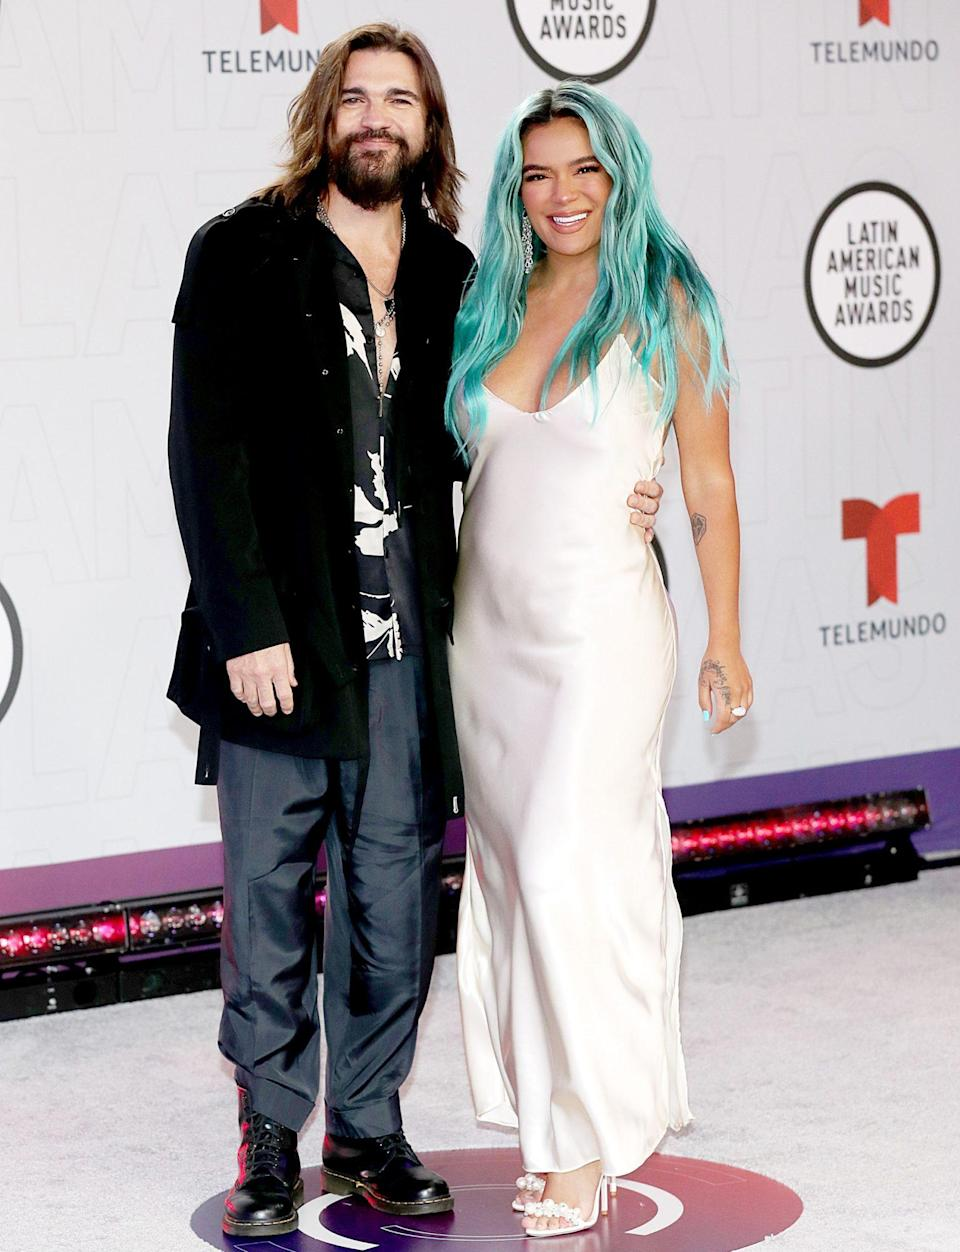 <p>Juanes and Karol G step out onto the red carpet for the Latin American Music Awards on Thursday in Sunrise, Florida. </p>